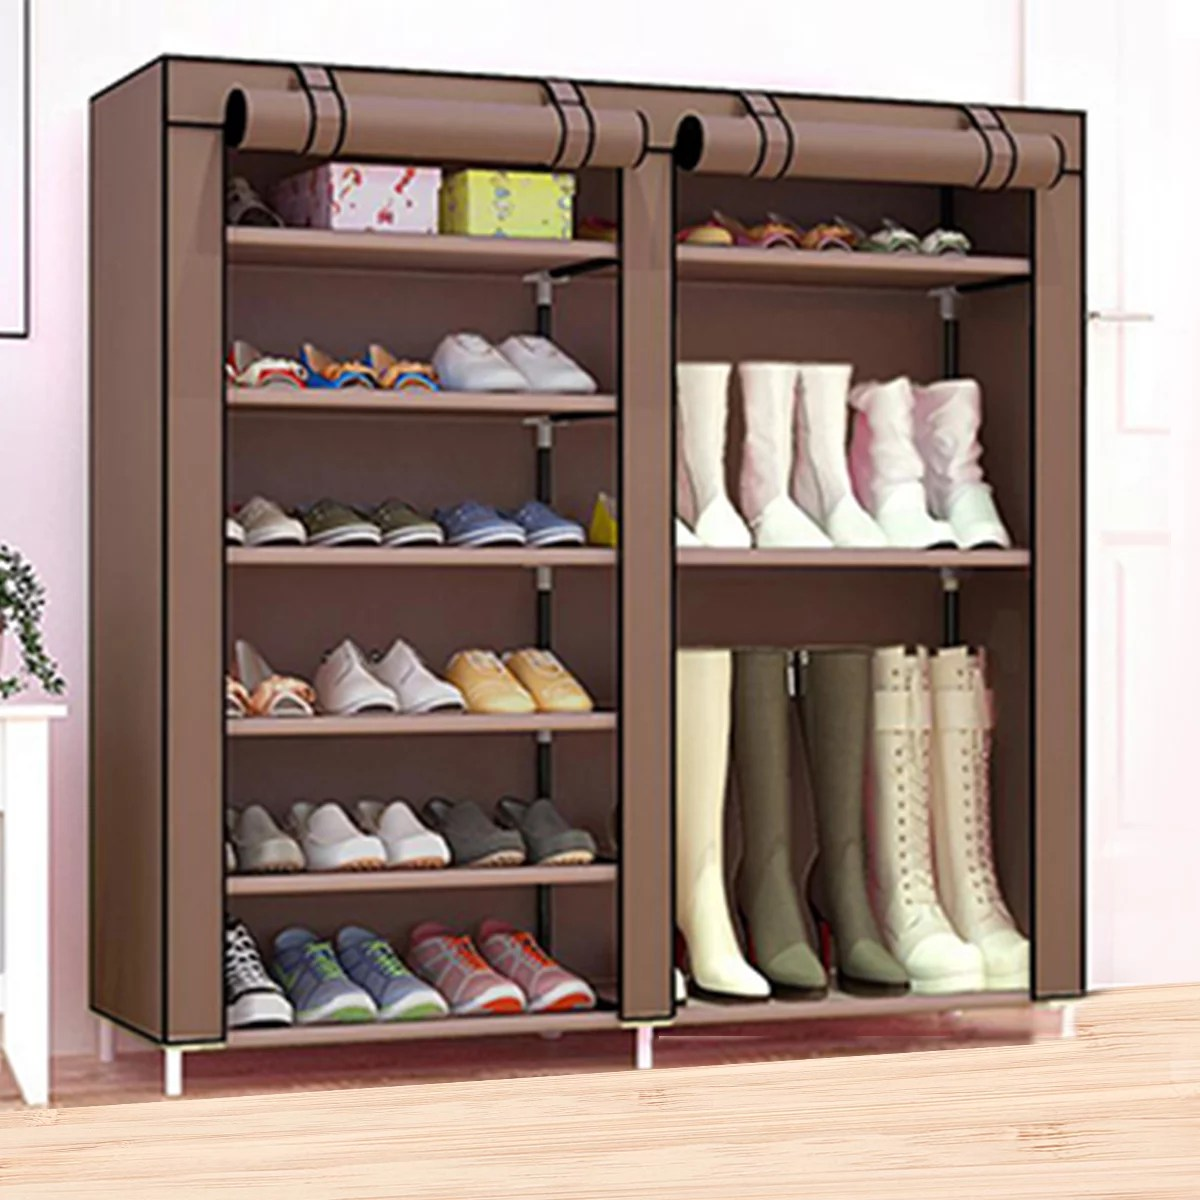 43inch h shoe rack boots storage organizer 12 tiers closet entryway shelf stackable cabinet double row non woven fabric 27 36 pairs coffee